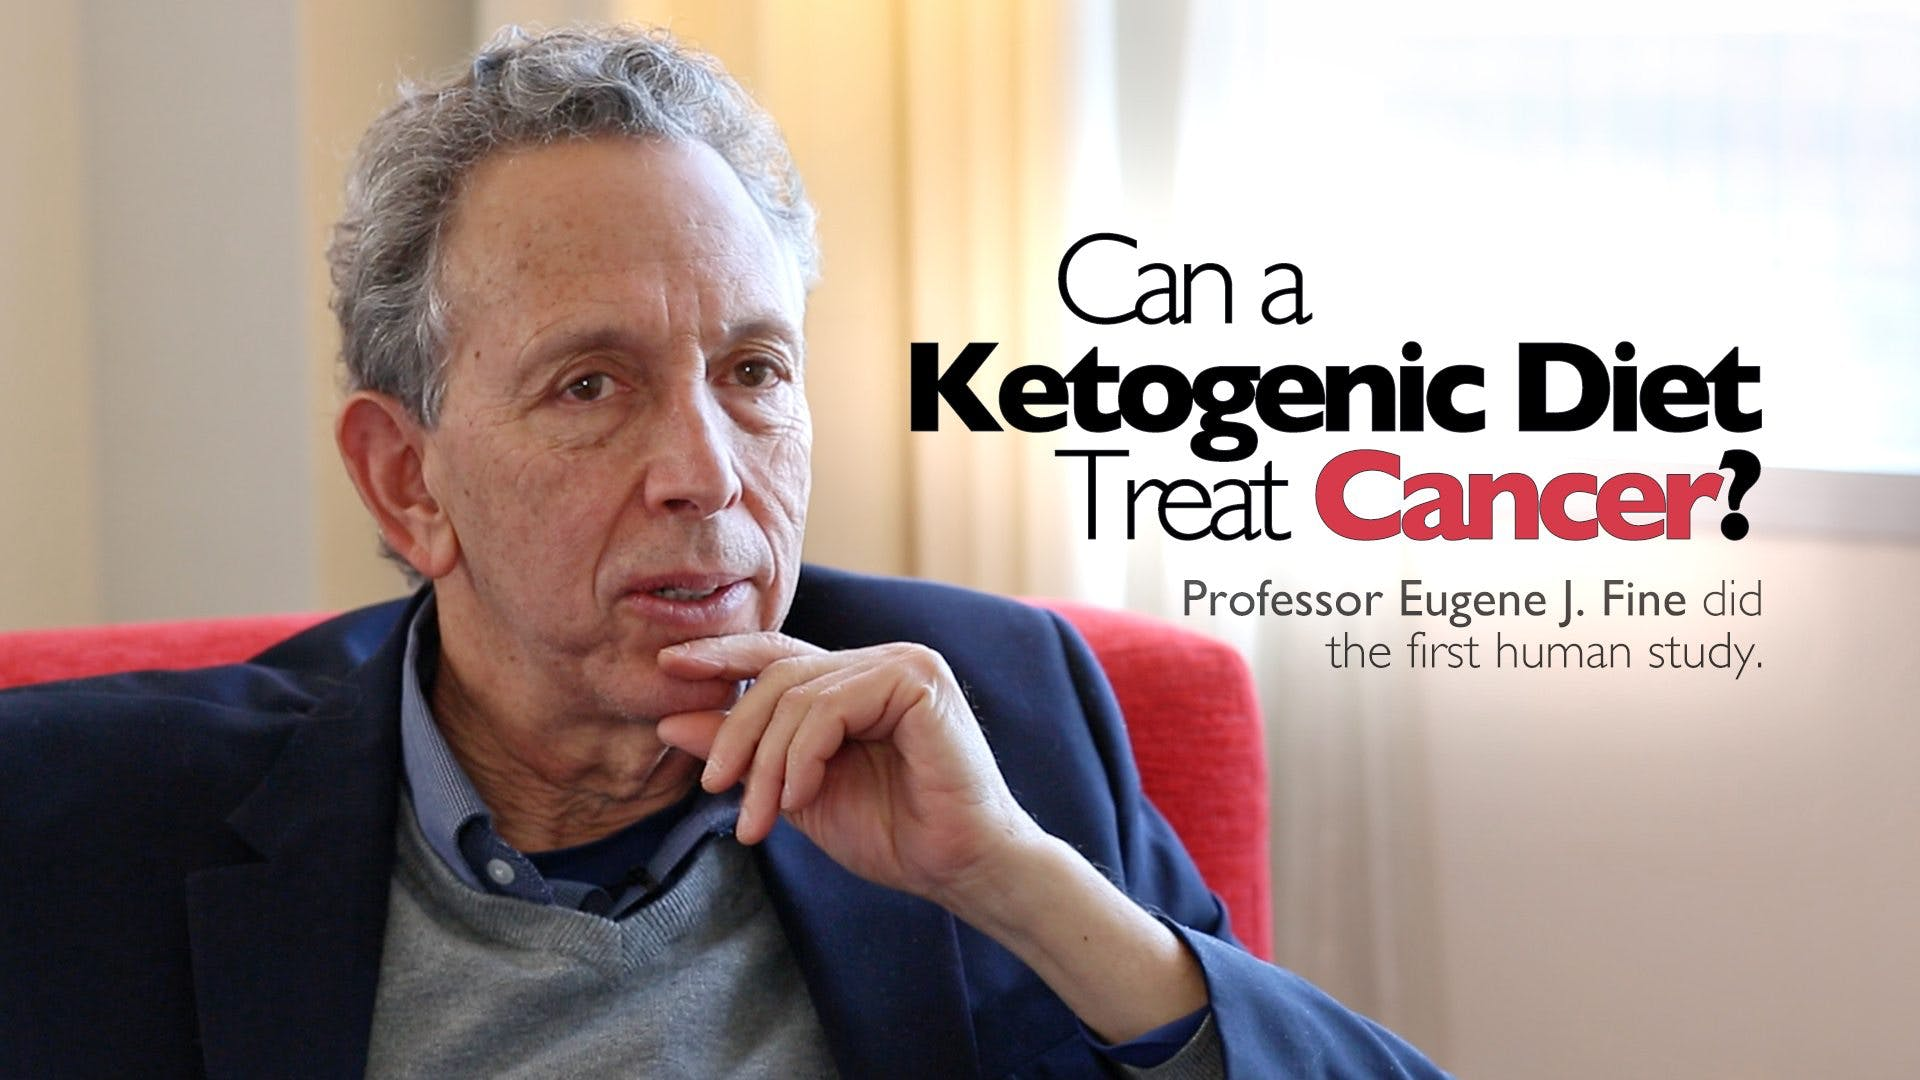 Can A Ketogenic Diet Treat Cancer? – Dr. Eugene Fine